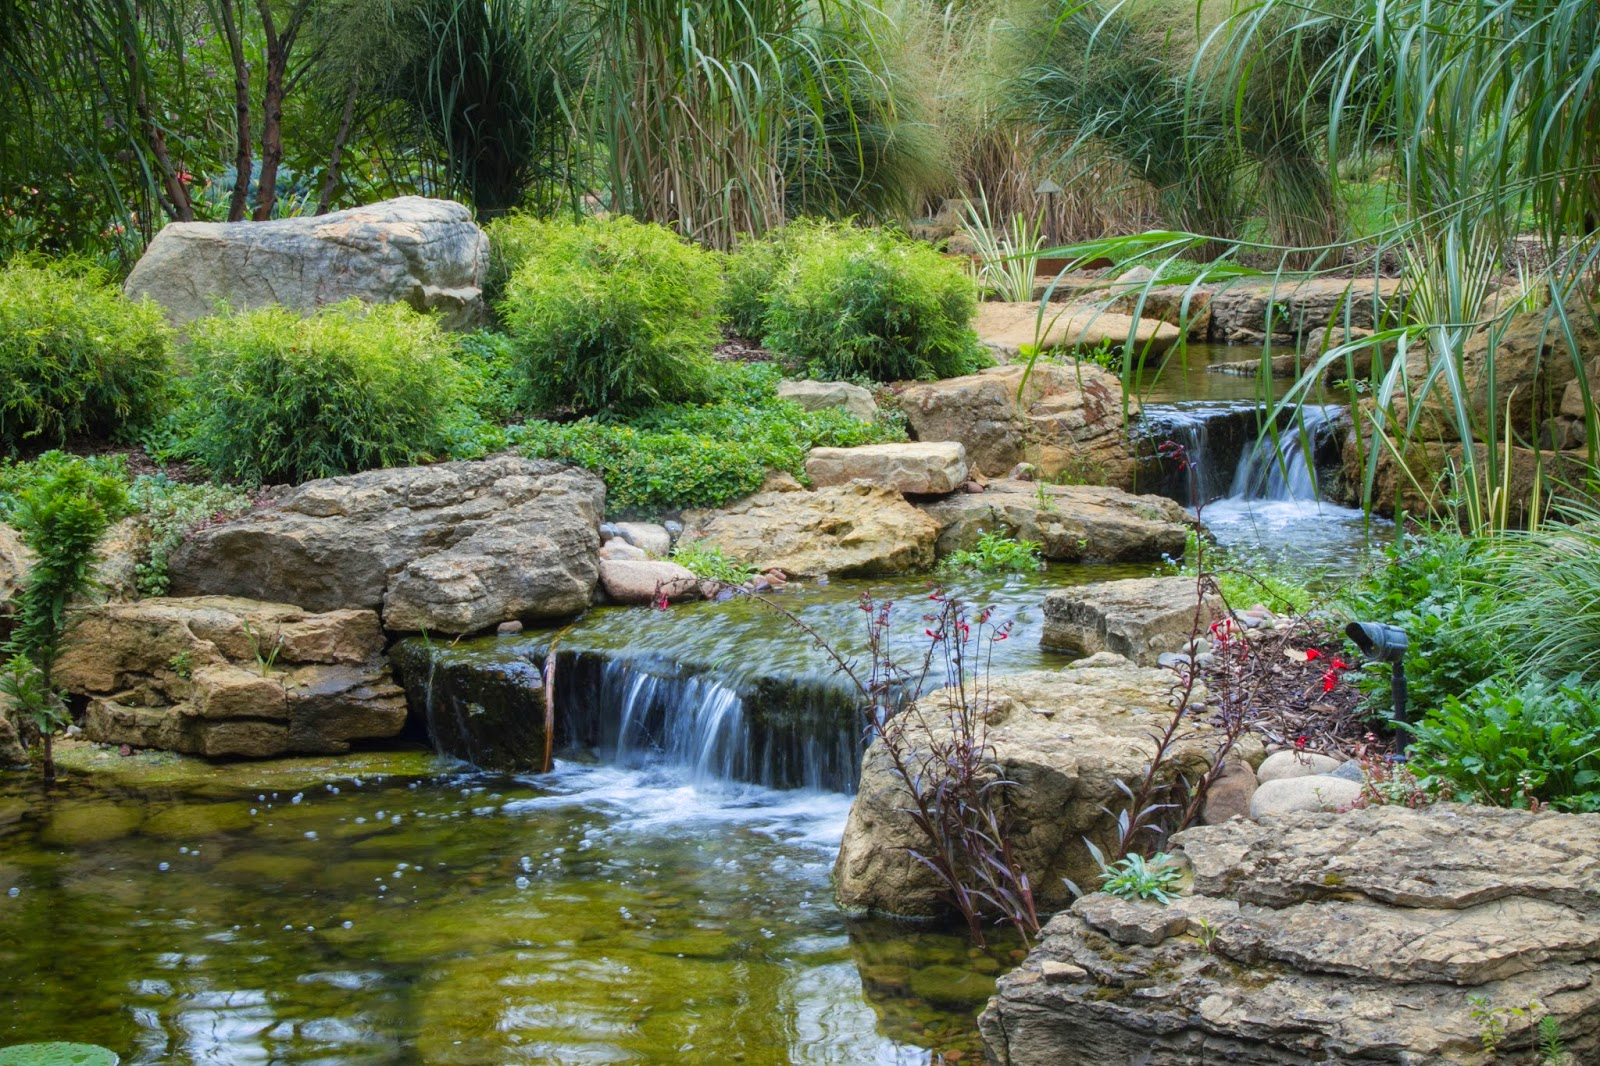 Aquascape Your Landscape How A Chicago Suburbanite Transformed Their Backyard With Water